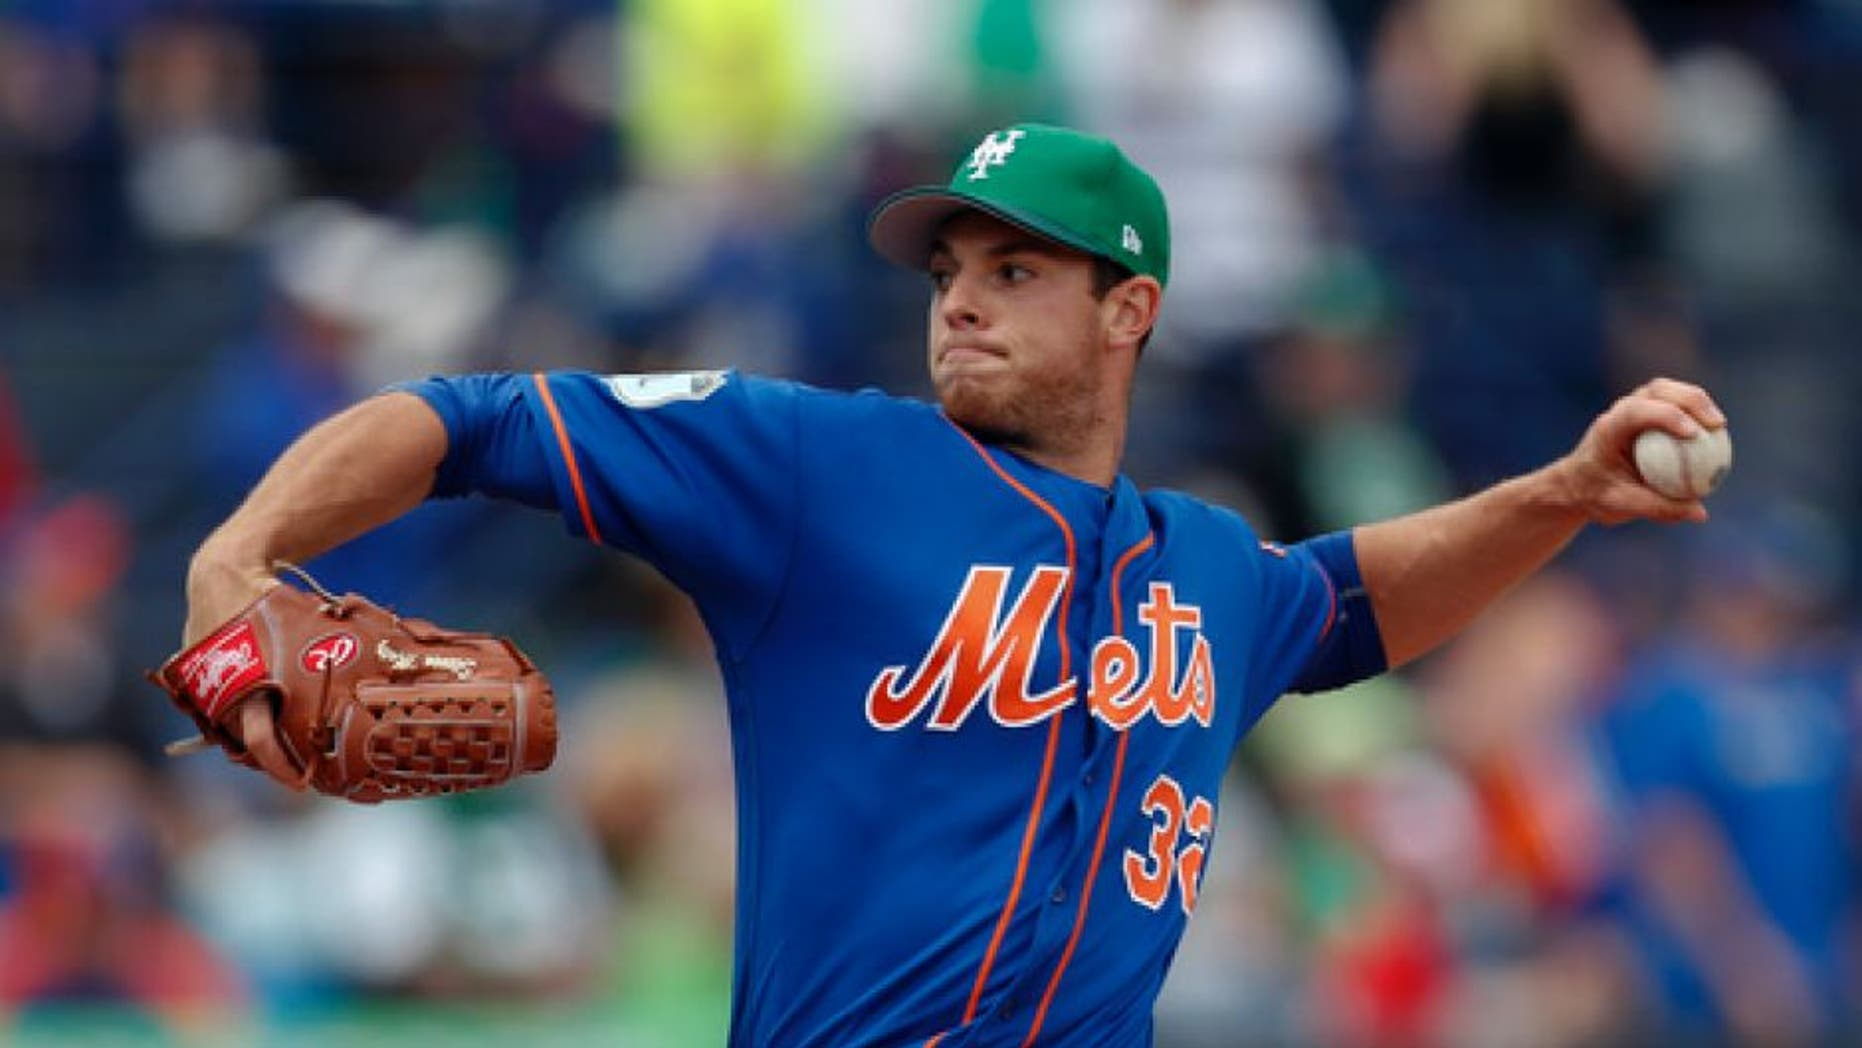 New York Mets starting pitcher Steven Matz works in the first inning of a spring training baseball game against the St. Louis Cardinals Friday, March 17, 2017, in Port St. Lucie, Fla. (AP Photo/John Bazemore)